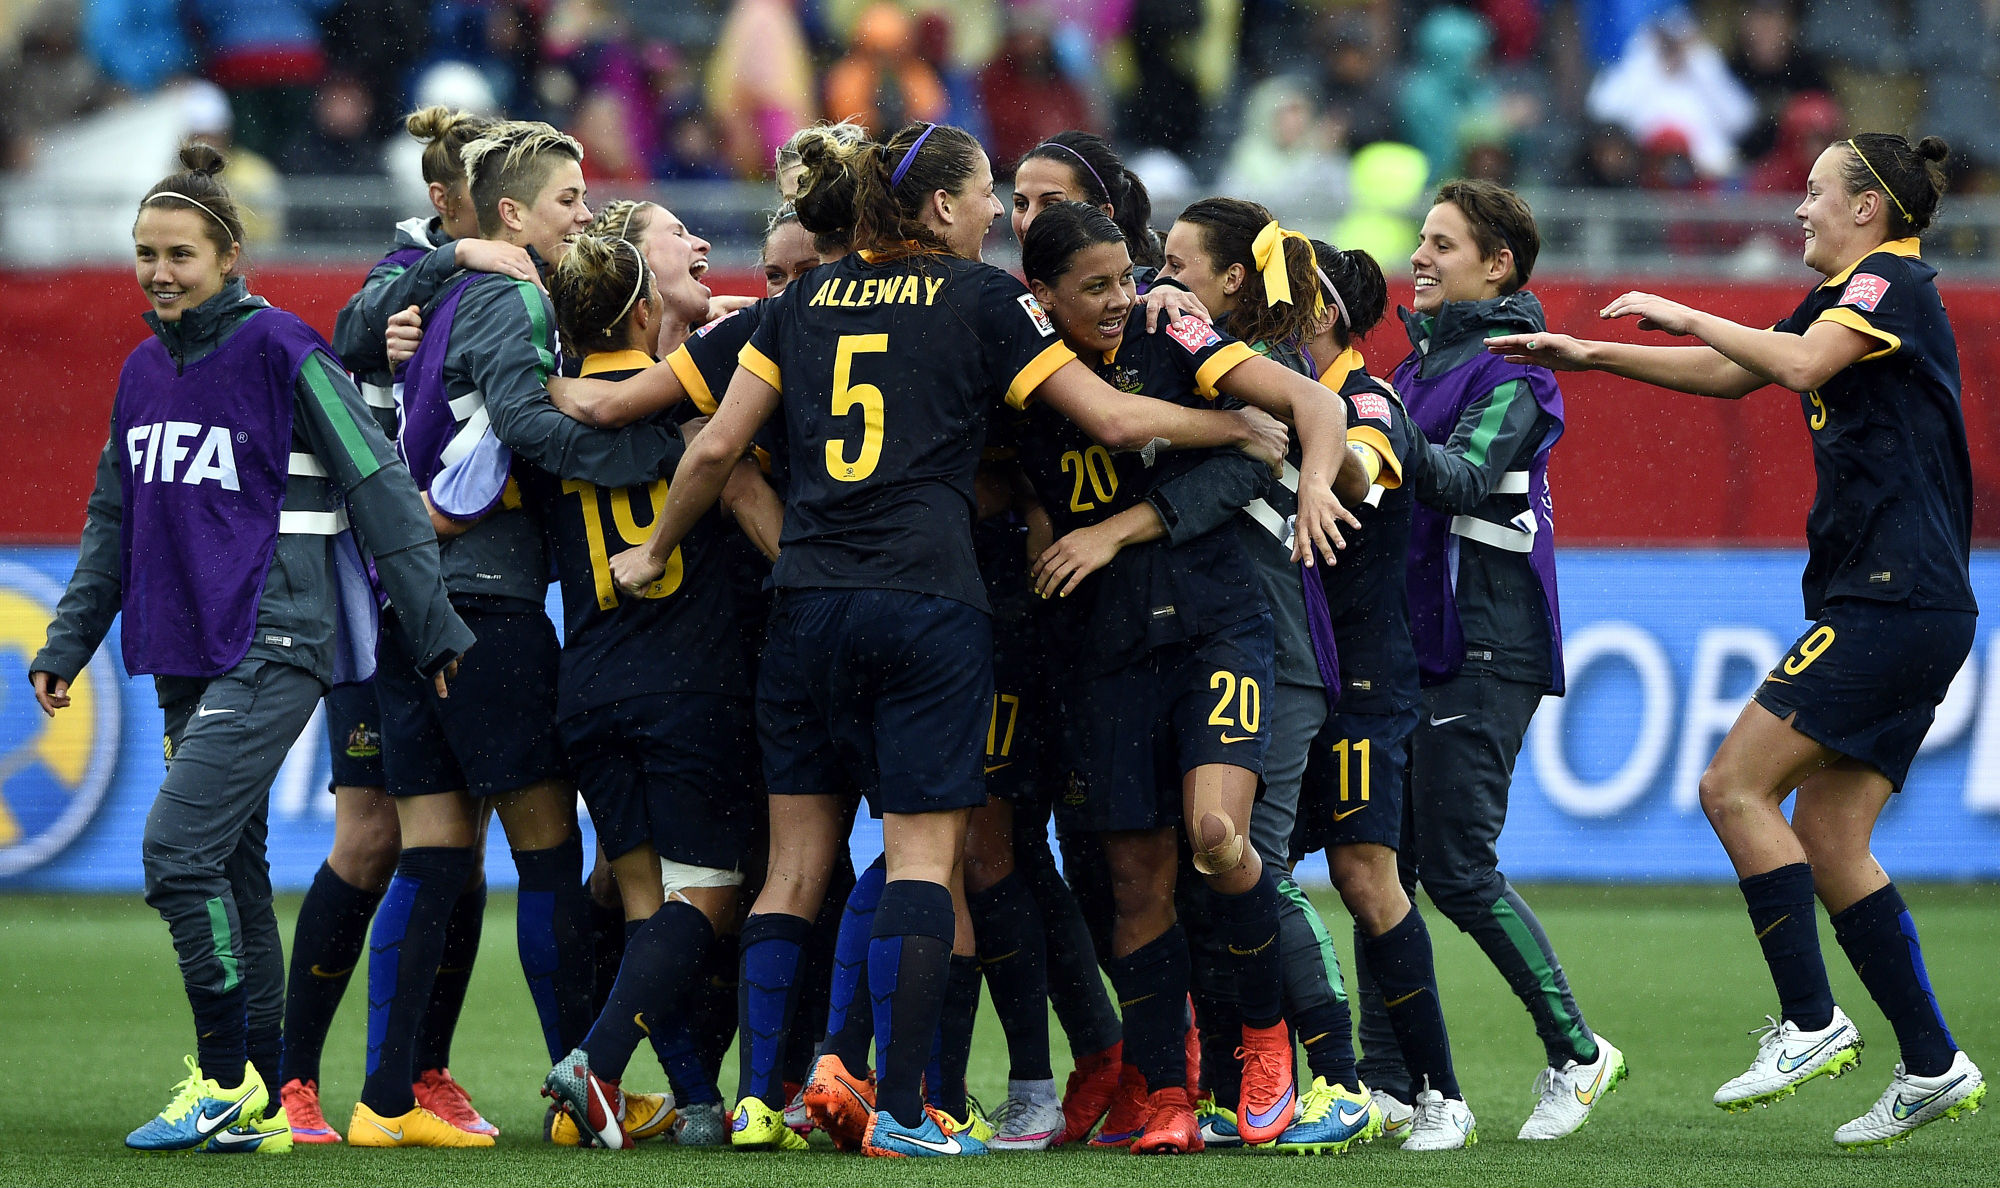 The Matildas celebrate advancing to the semi-finals after beating Brazil at FIFA Women's World Cup Canada 2015​​